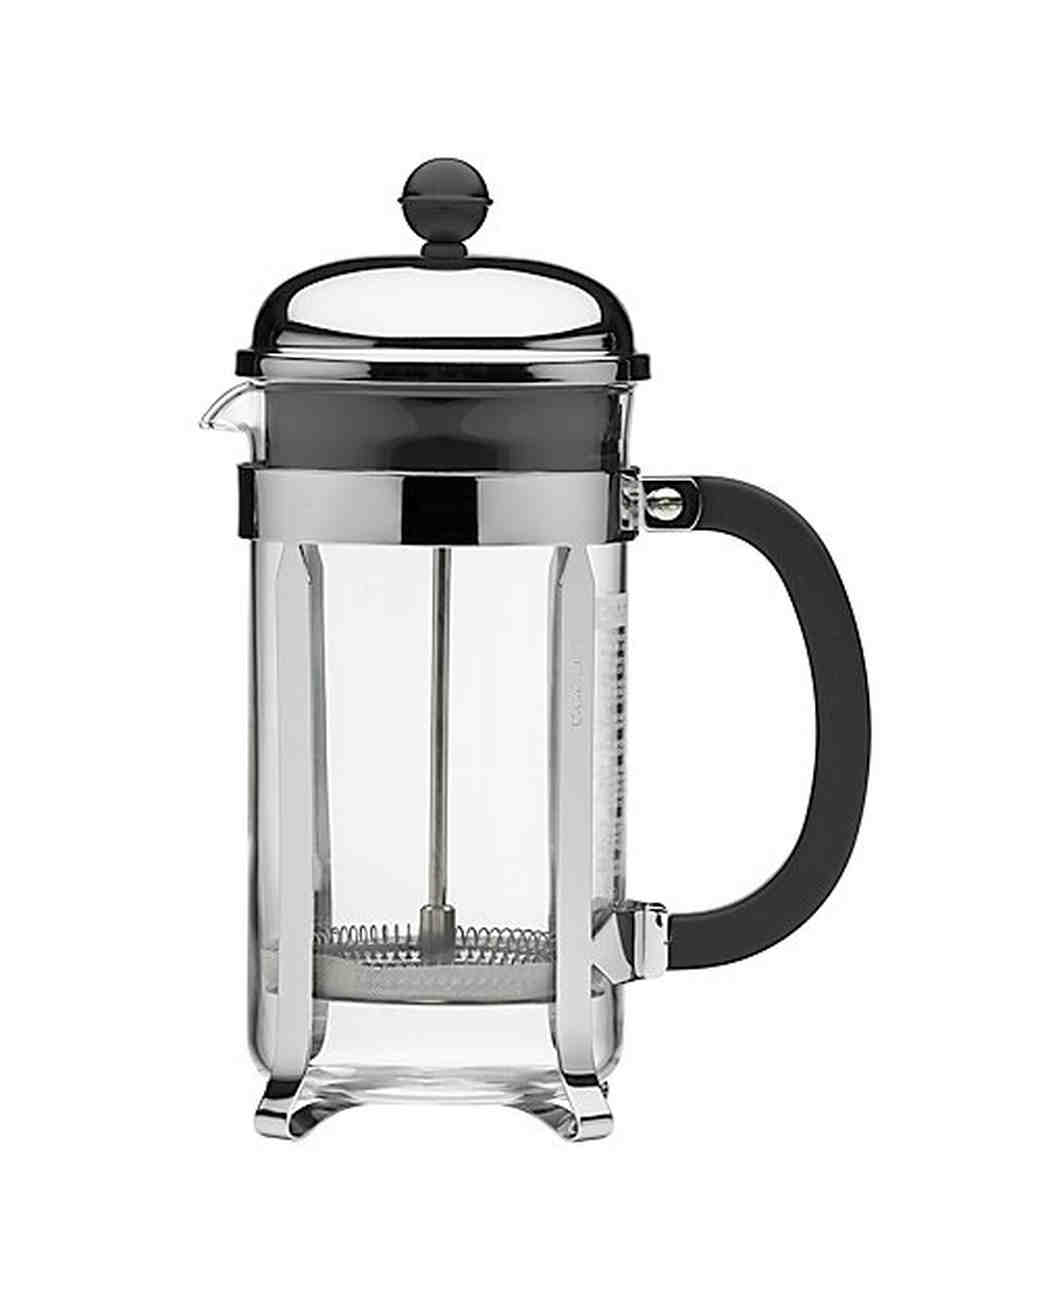 engagement-gifts-crate-barrel-french-press-0316.jpg